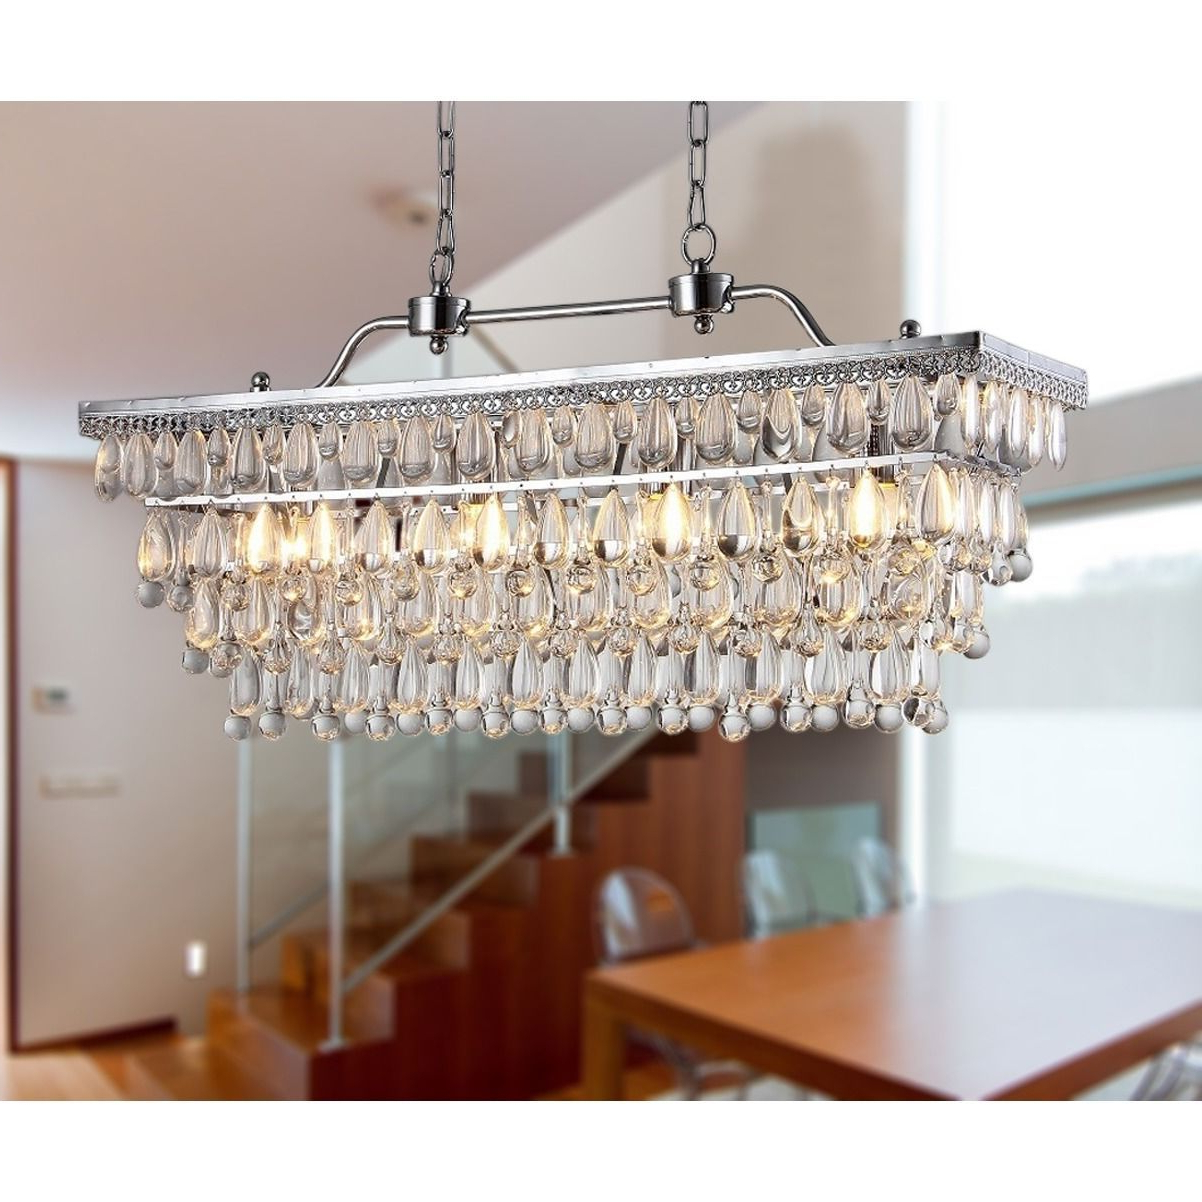 Gracelyn 8 Light Kitchen Island Pendants With Regard To 2020 Warehouse Of Tiffany Willow 4 Light Crystal 30 Inch Chrome (View 22 of 25)